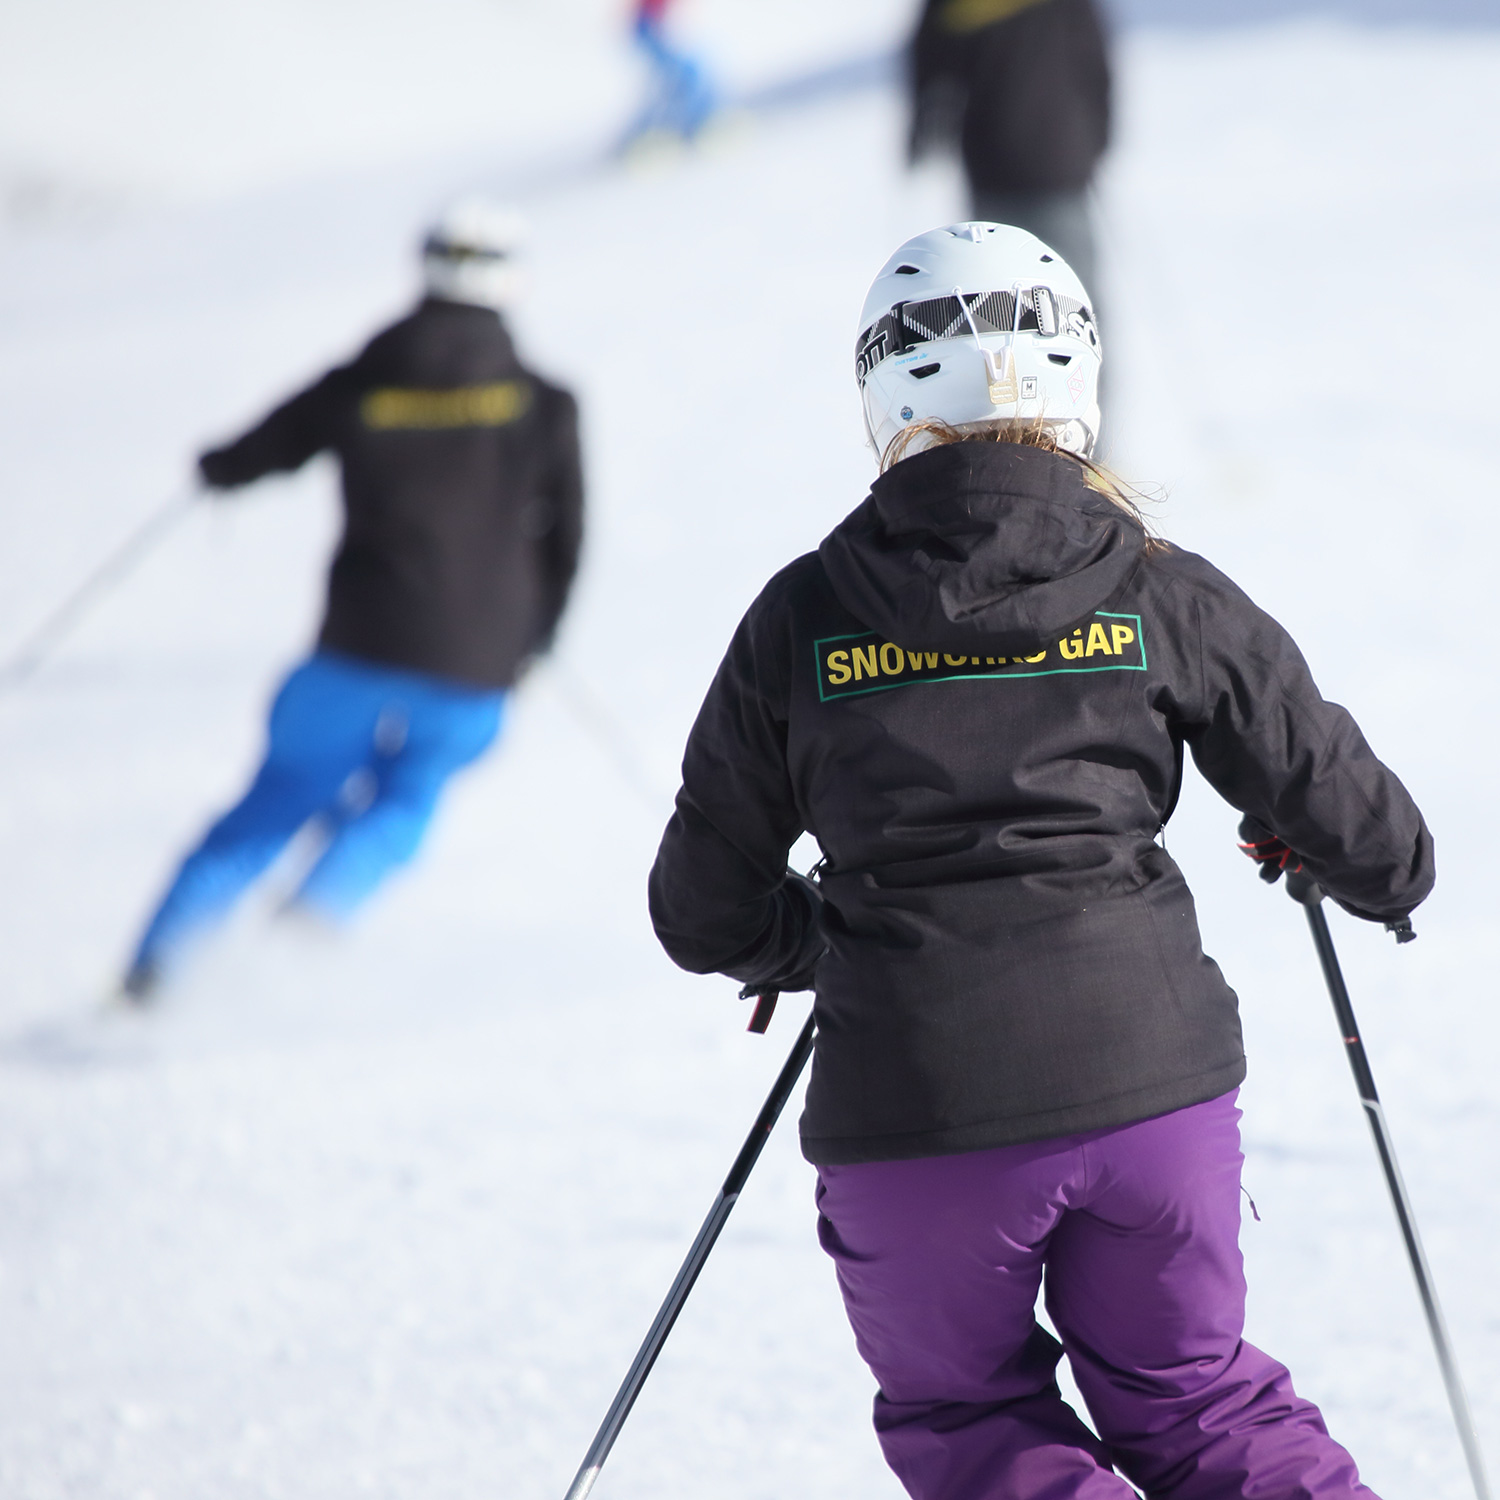 Snoworks GAP ski instructor courses